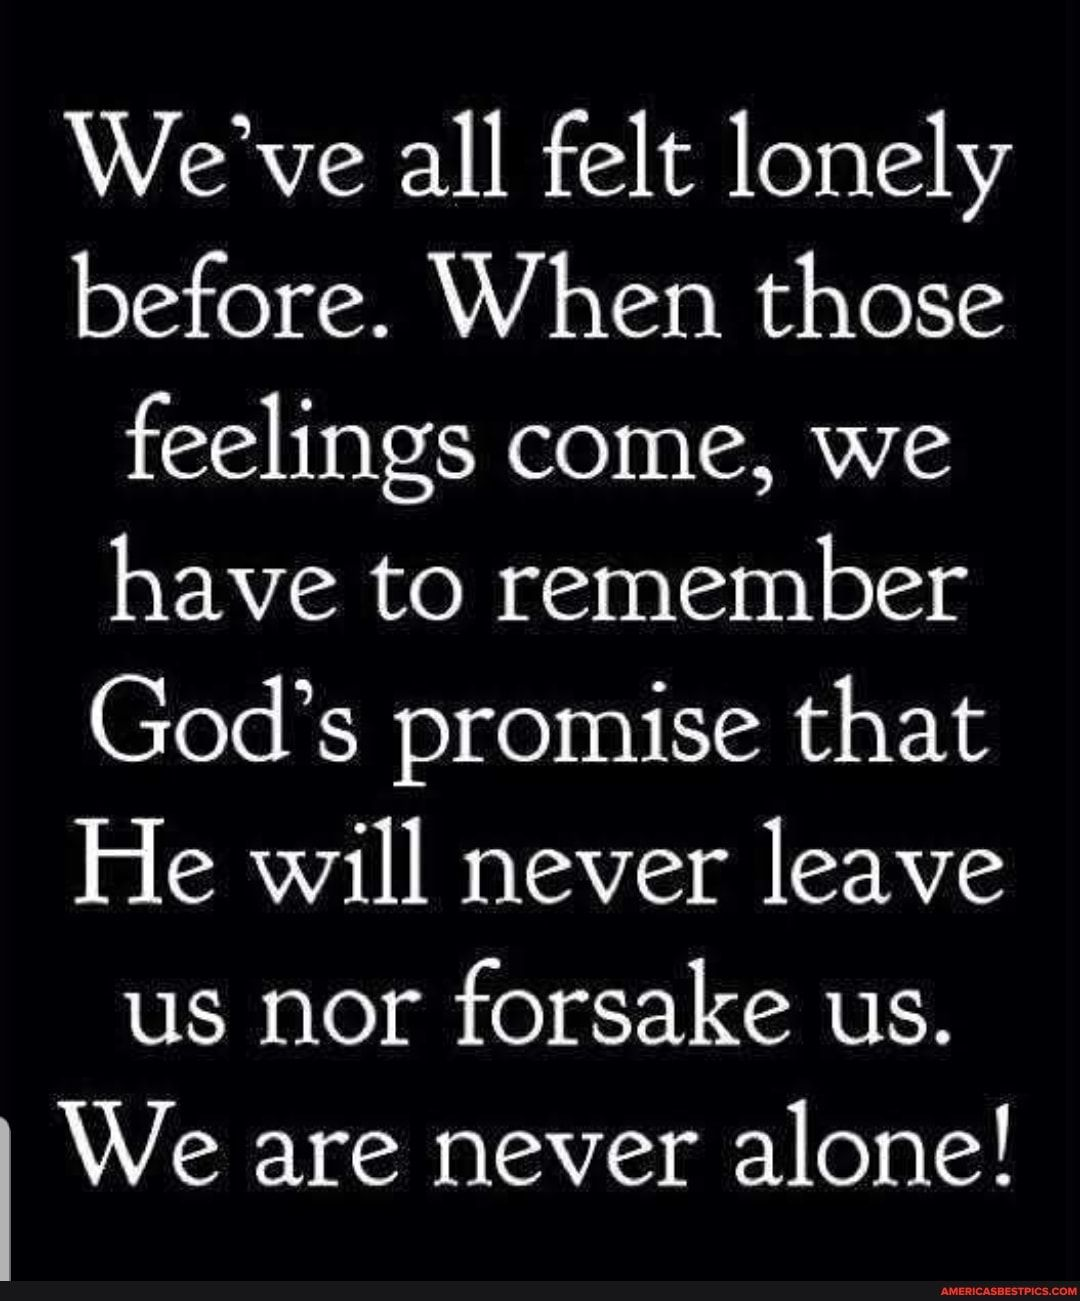 We've all felt lonely before. When those feelings come, we have to remember God's promise that He will never leave us nor forsake us. We are never alone! - America's best pics and videos